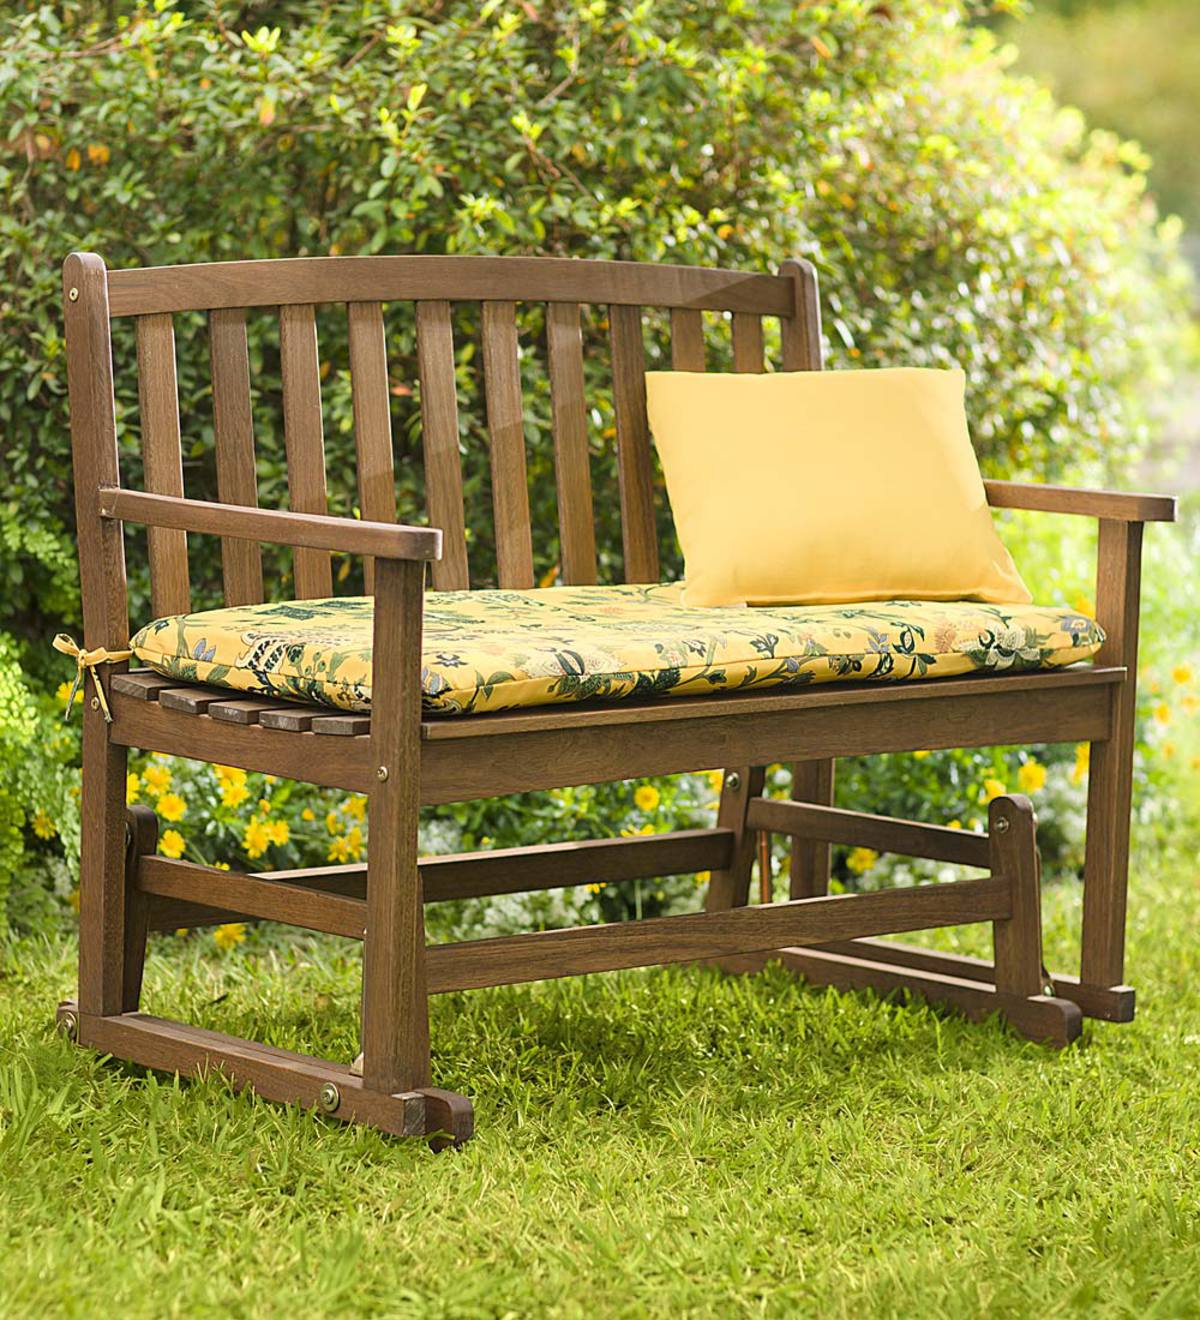 Eucalyptus Wood Love Seat Glider Lancaster Outdoor Furniture Collection Natural Plowhearth